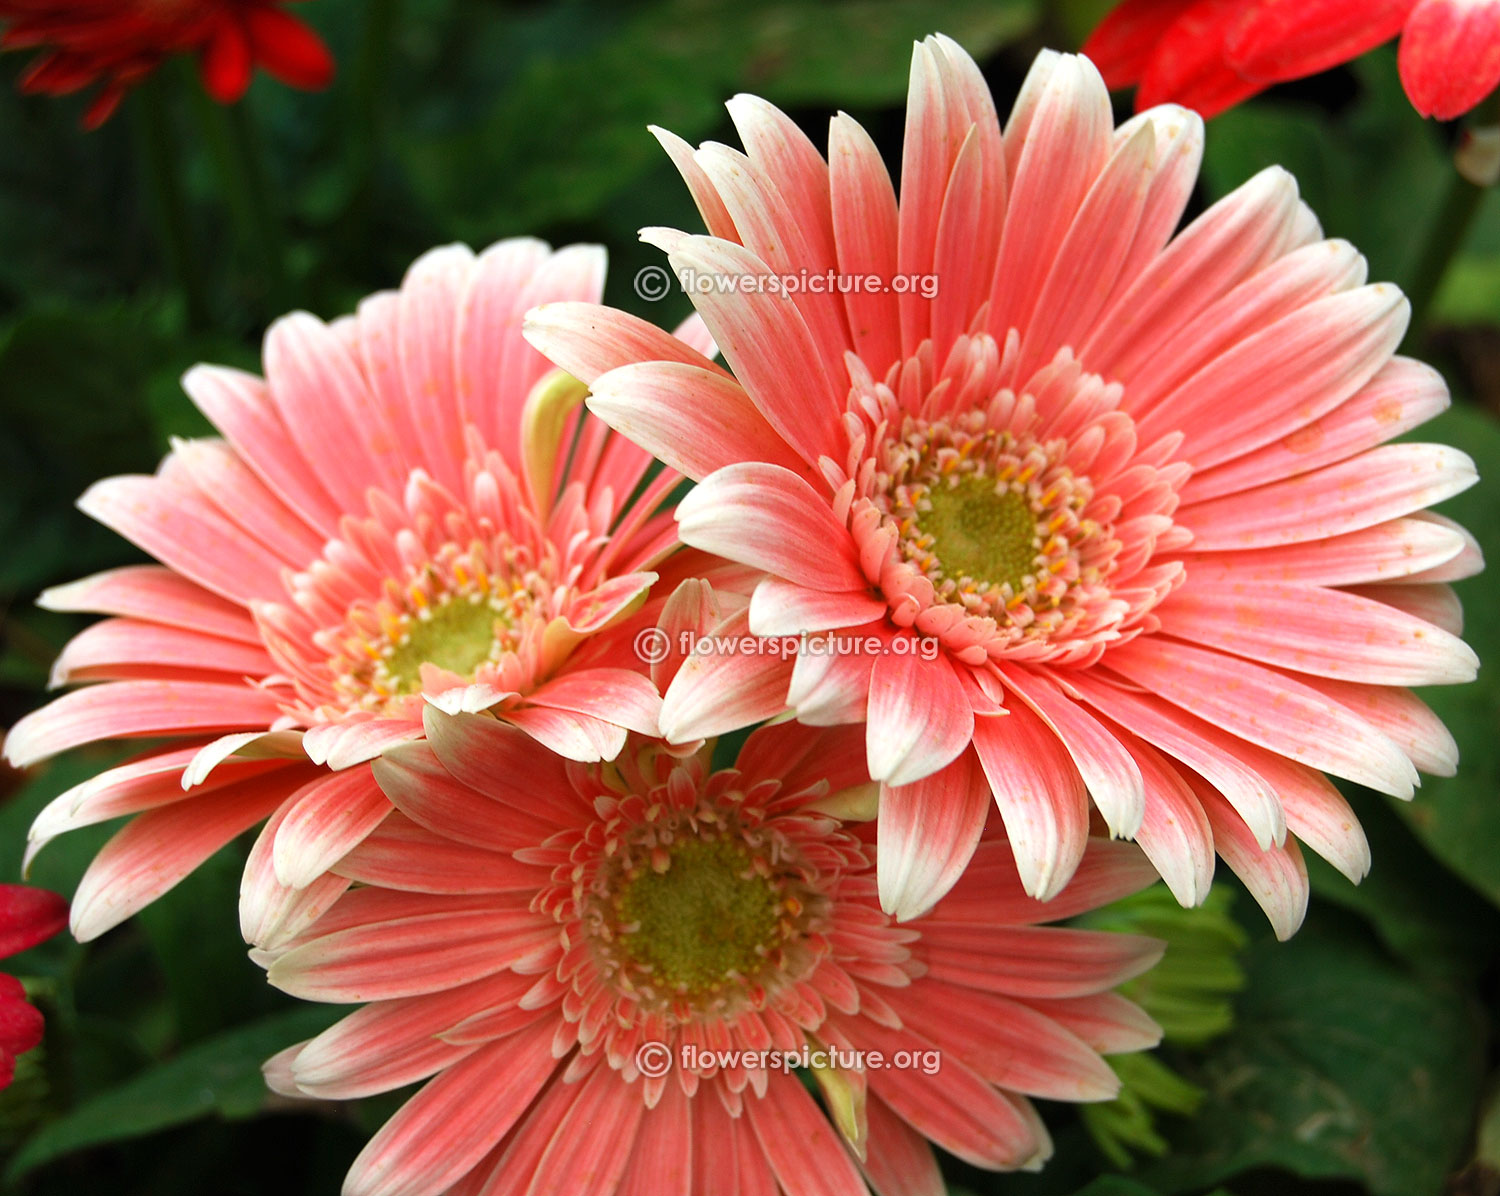 Gerbera daisy varieties Salmon pink gerbera daisy lalbagh krumbiegel remembered flower show jan 2016